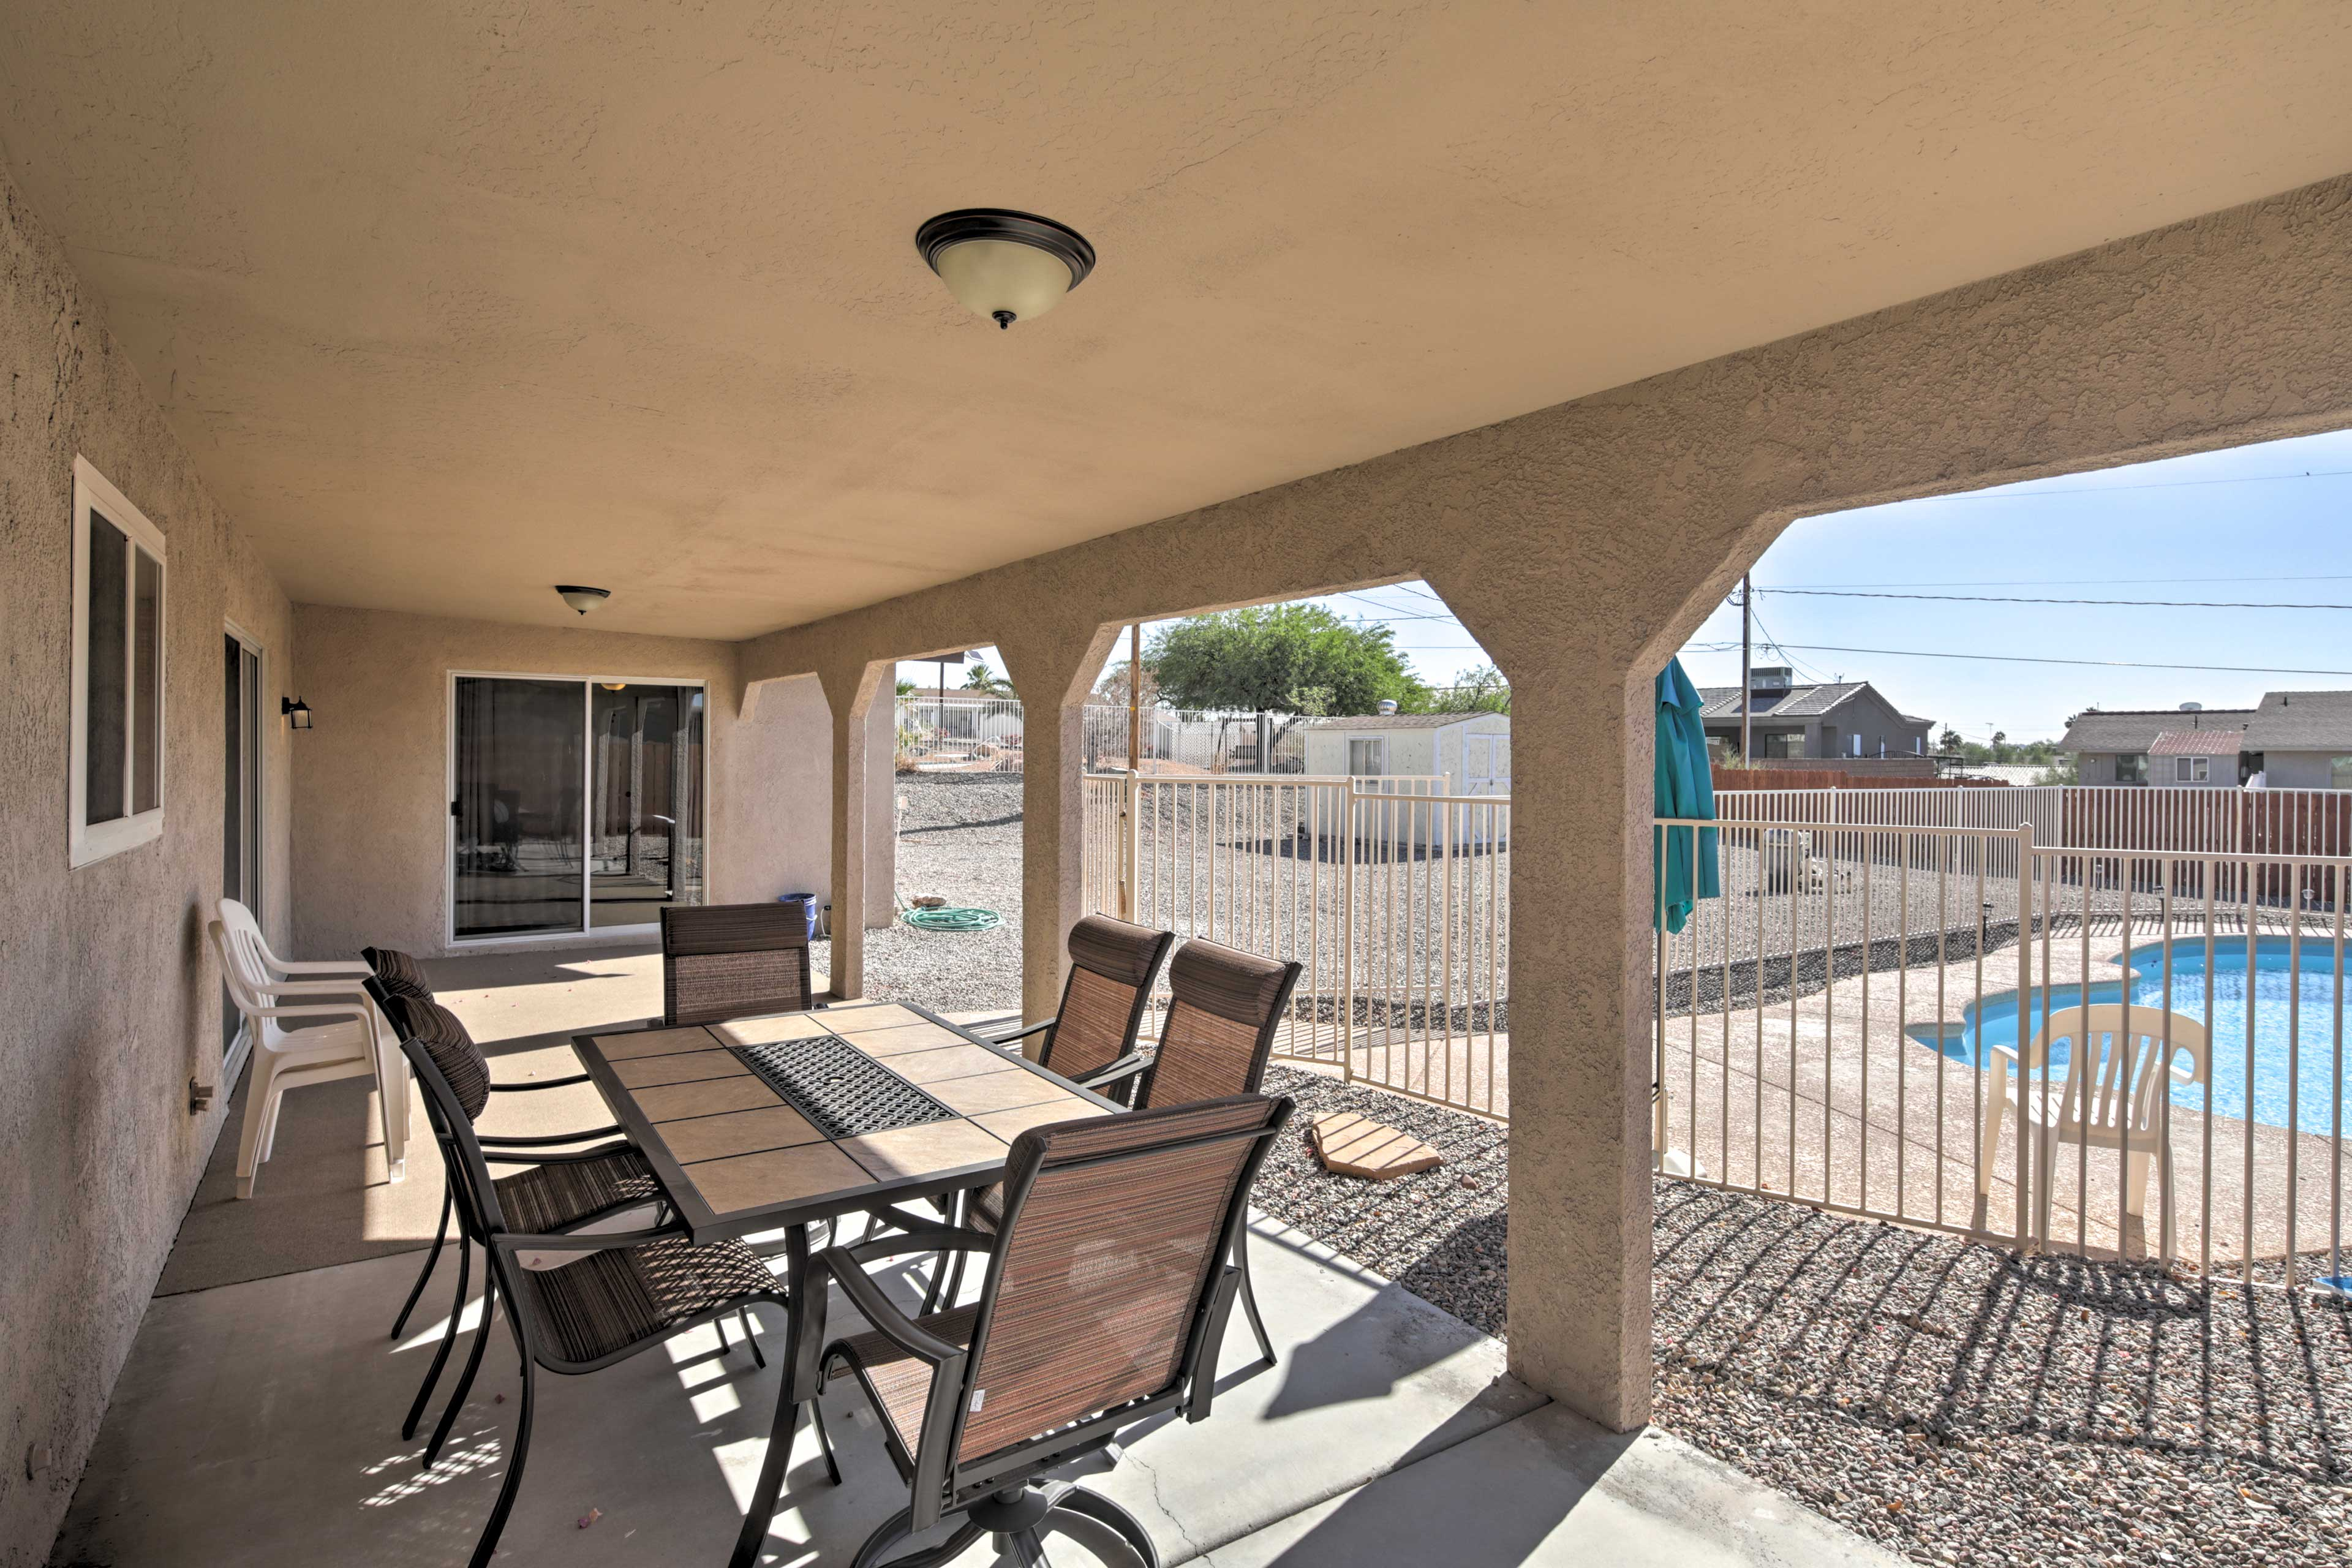 With 3 bedrooms and 2 bathrooms, this home has space for 9 guests.